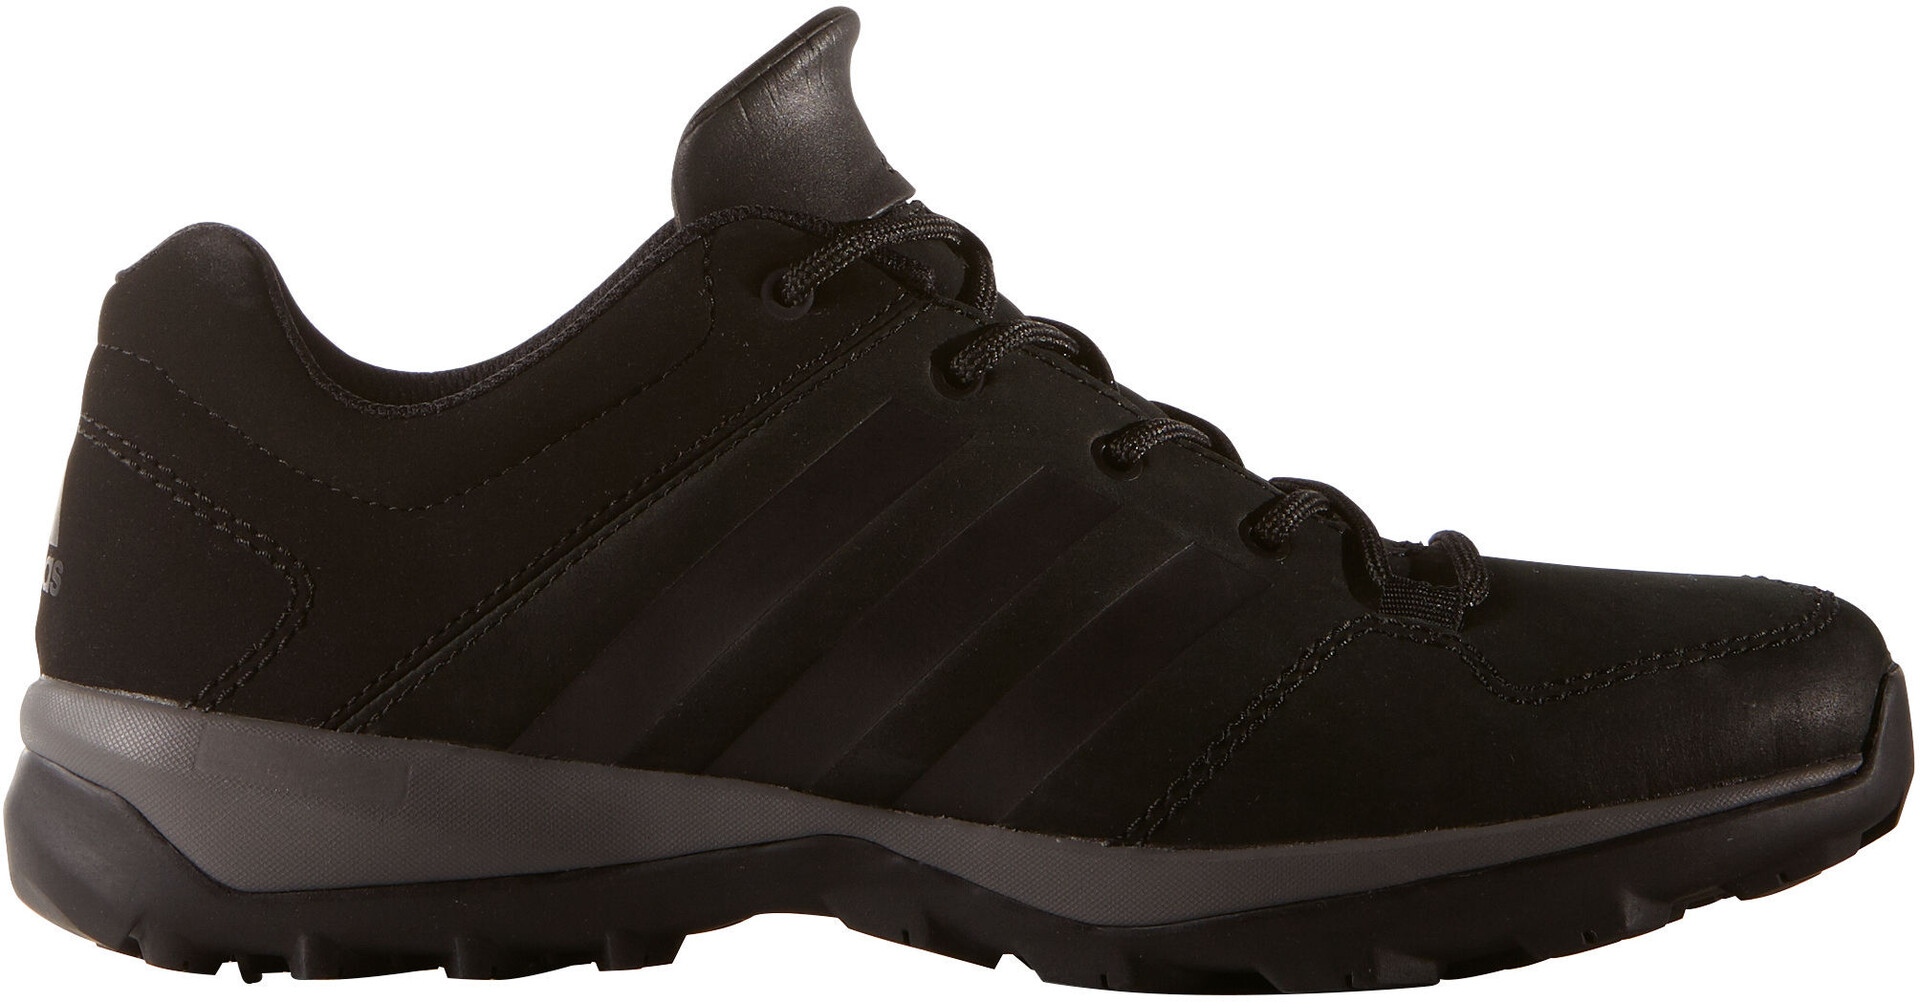 adidas Daroga Plus Lea Schoenen Heren, core blackgranitecore black